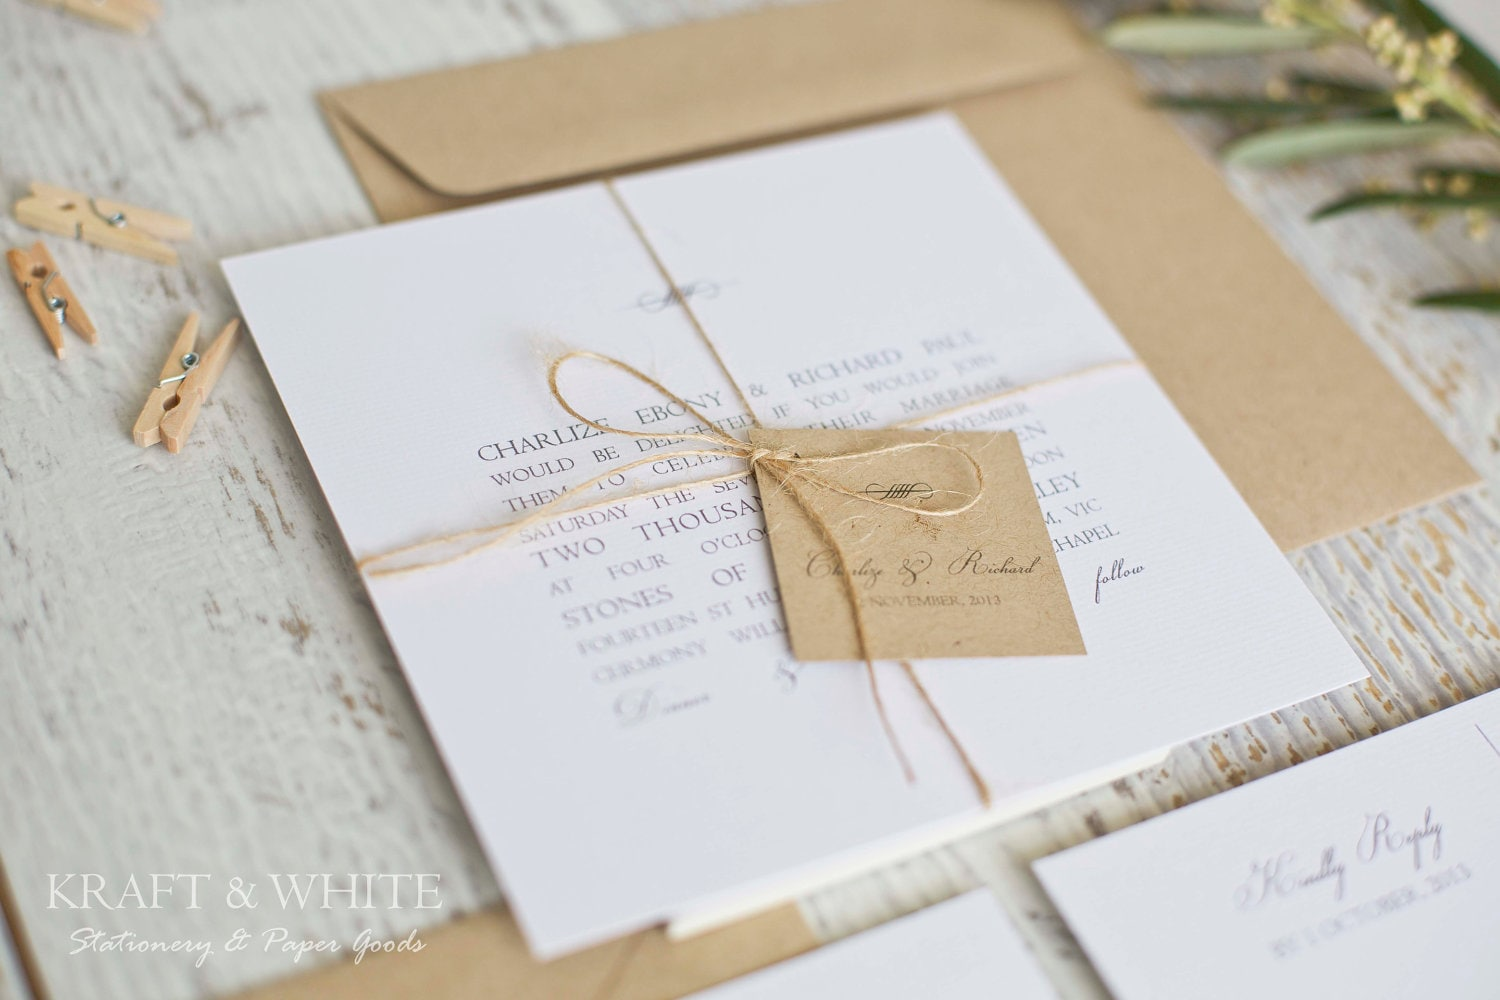 Popular items for wedding stationery on Etsy